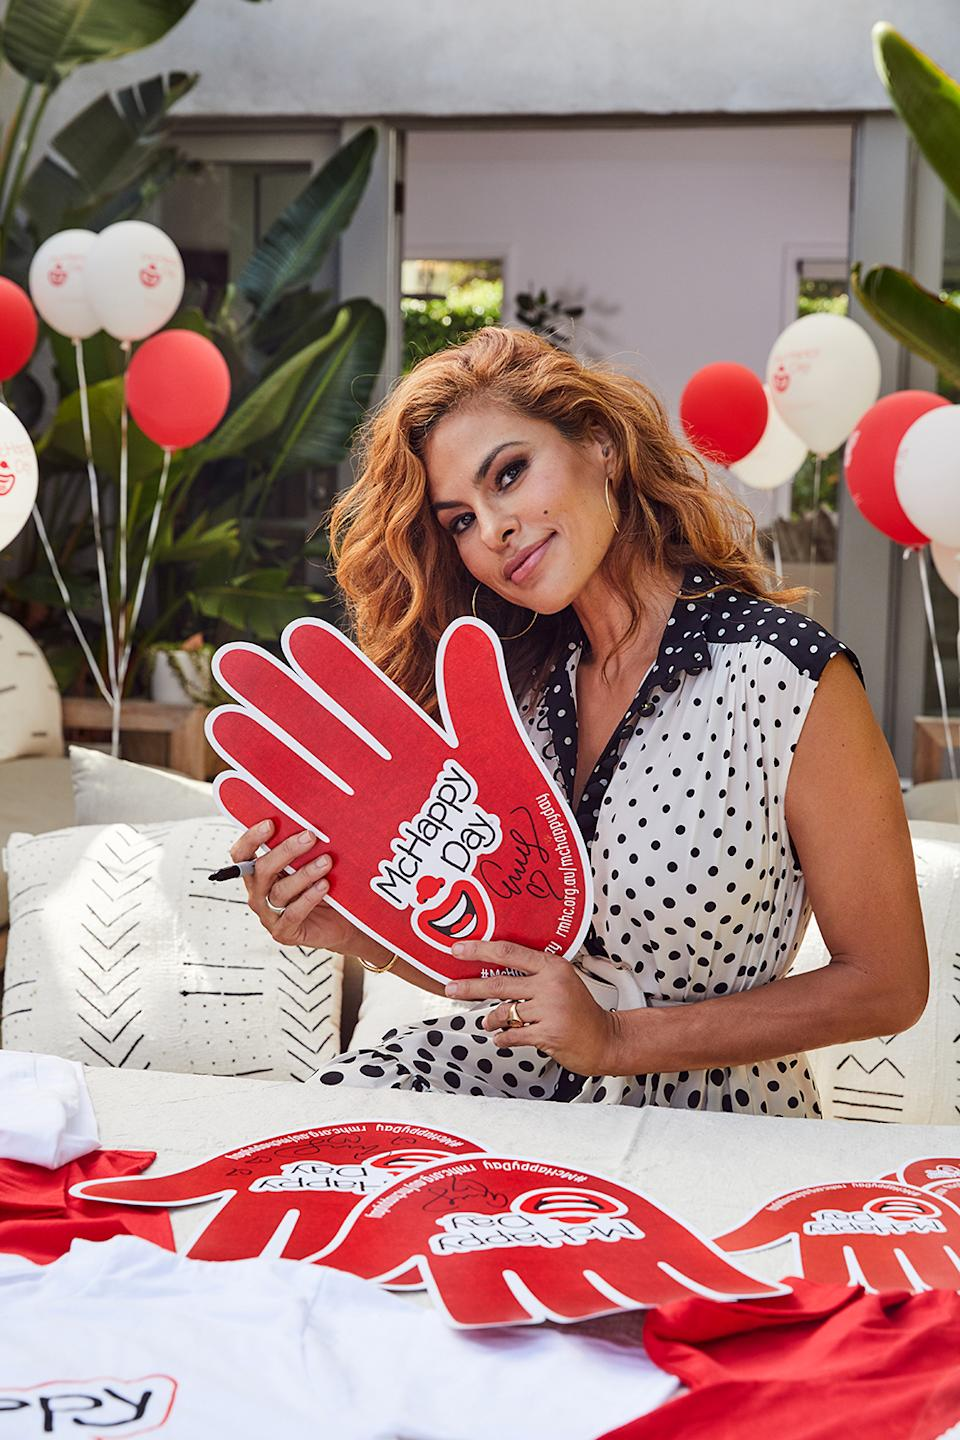 Eva Mendes as the McHappy Day ambassador for 2020